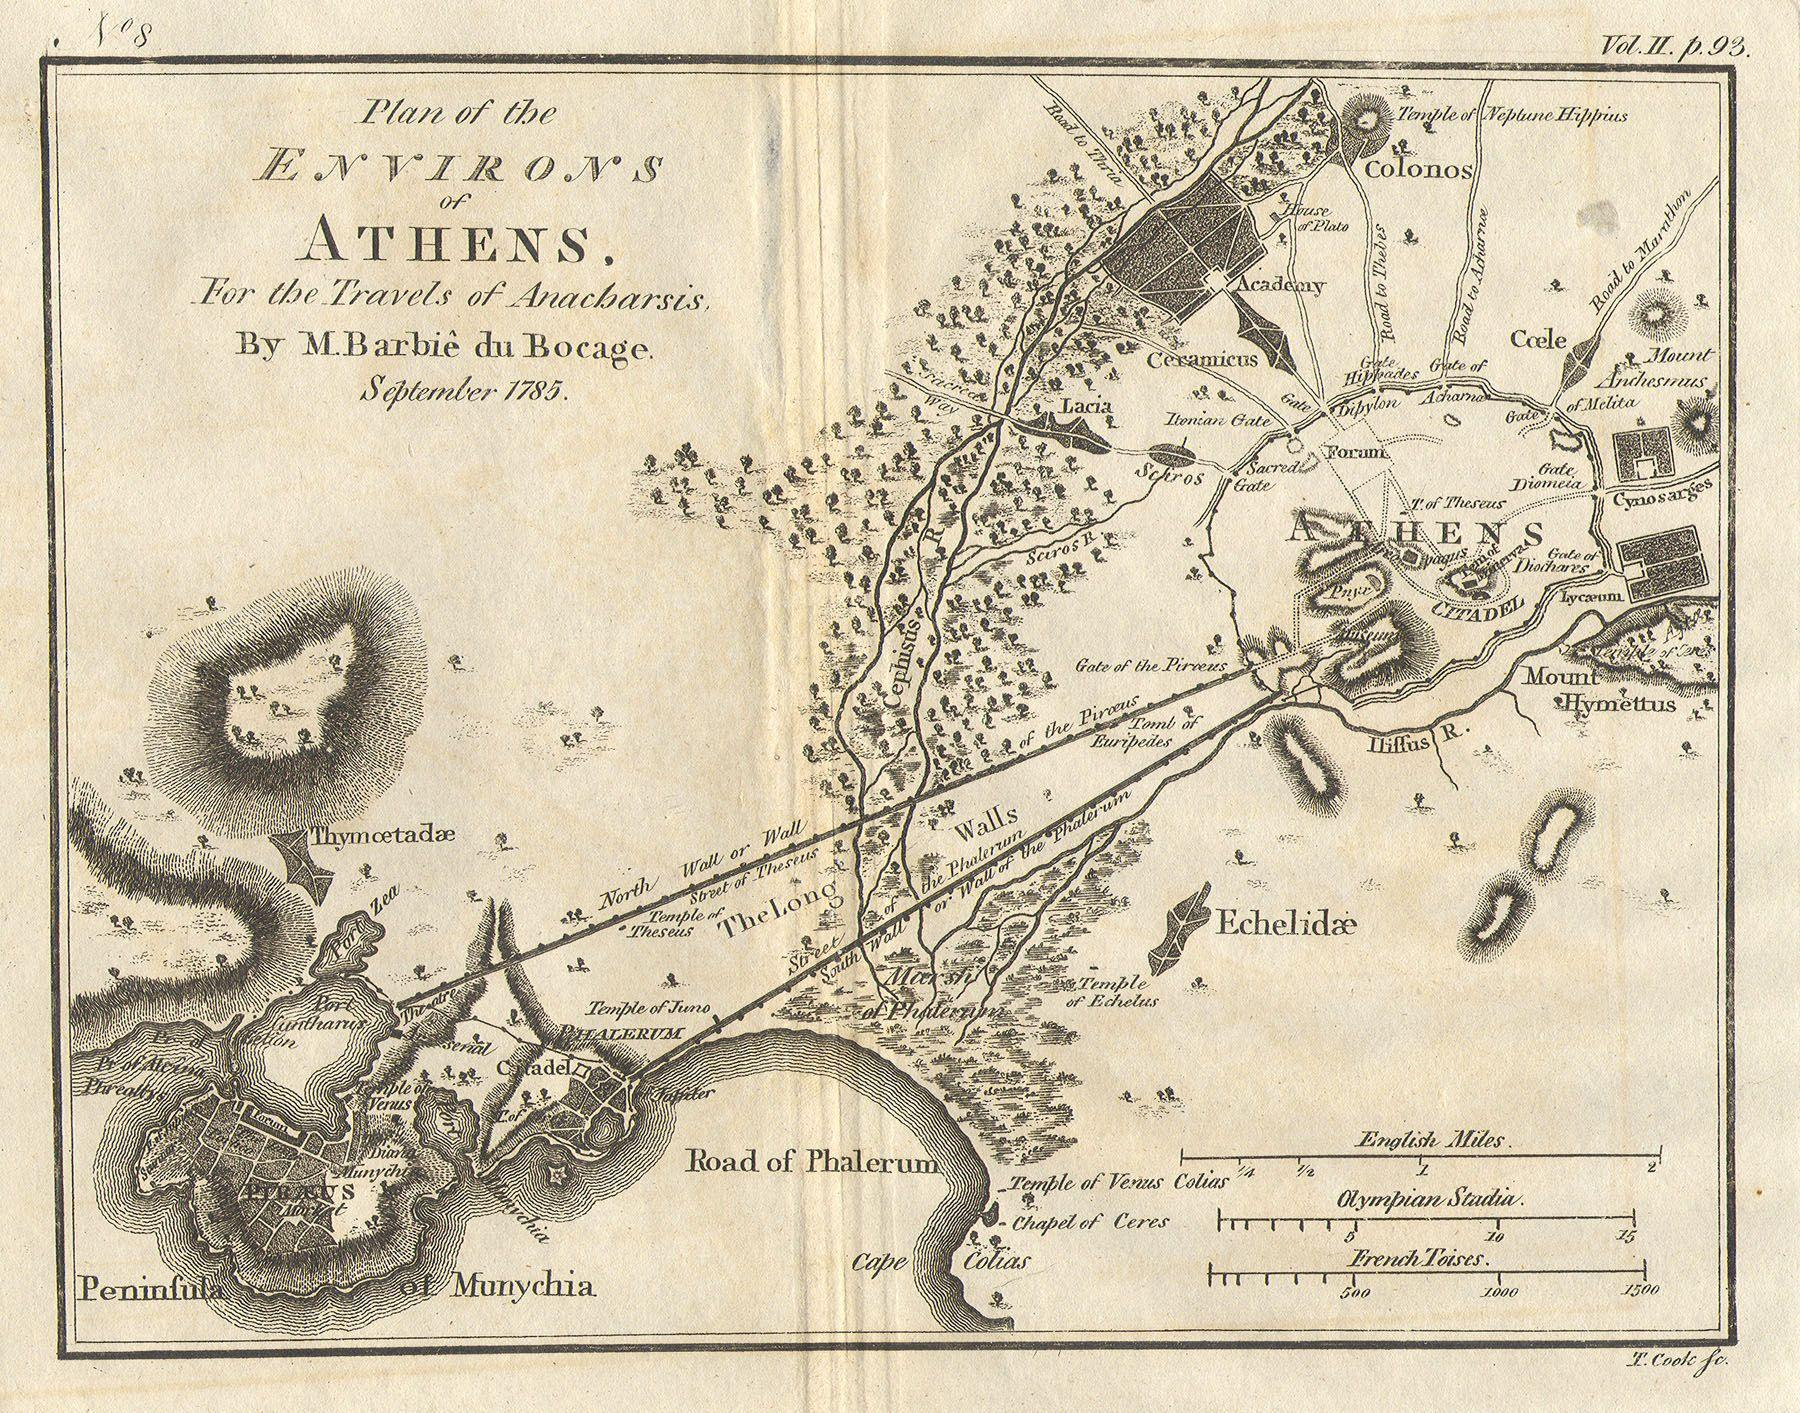 1785_Bocage_Map_of_Athens_and_Environs,original walls of athens showing Pireos and Siggrou